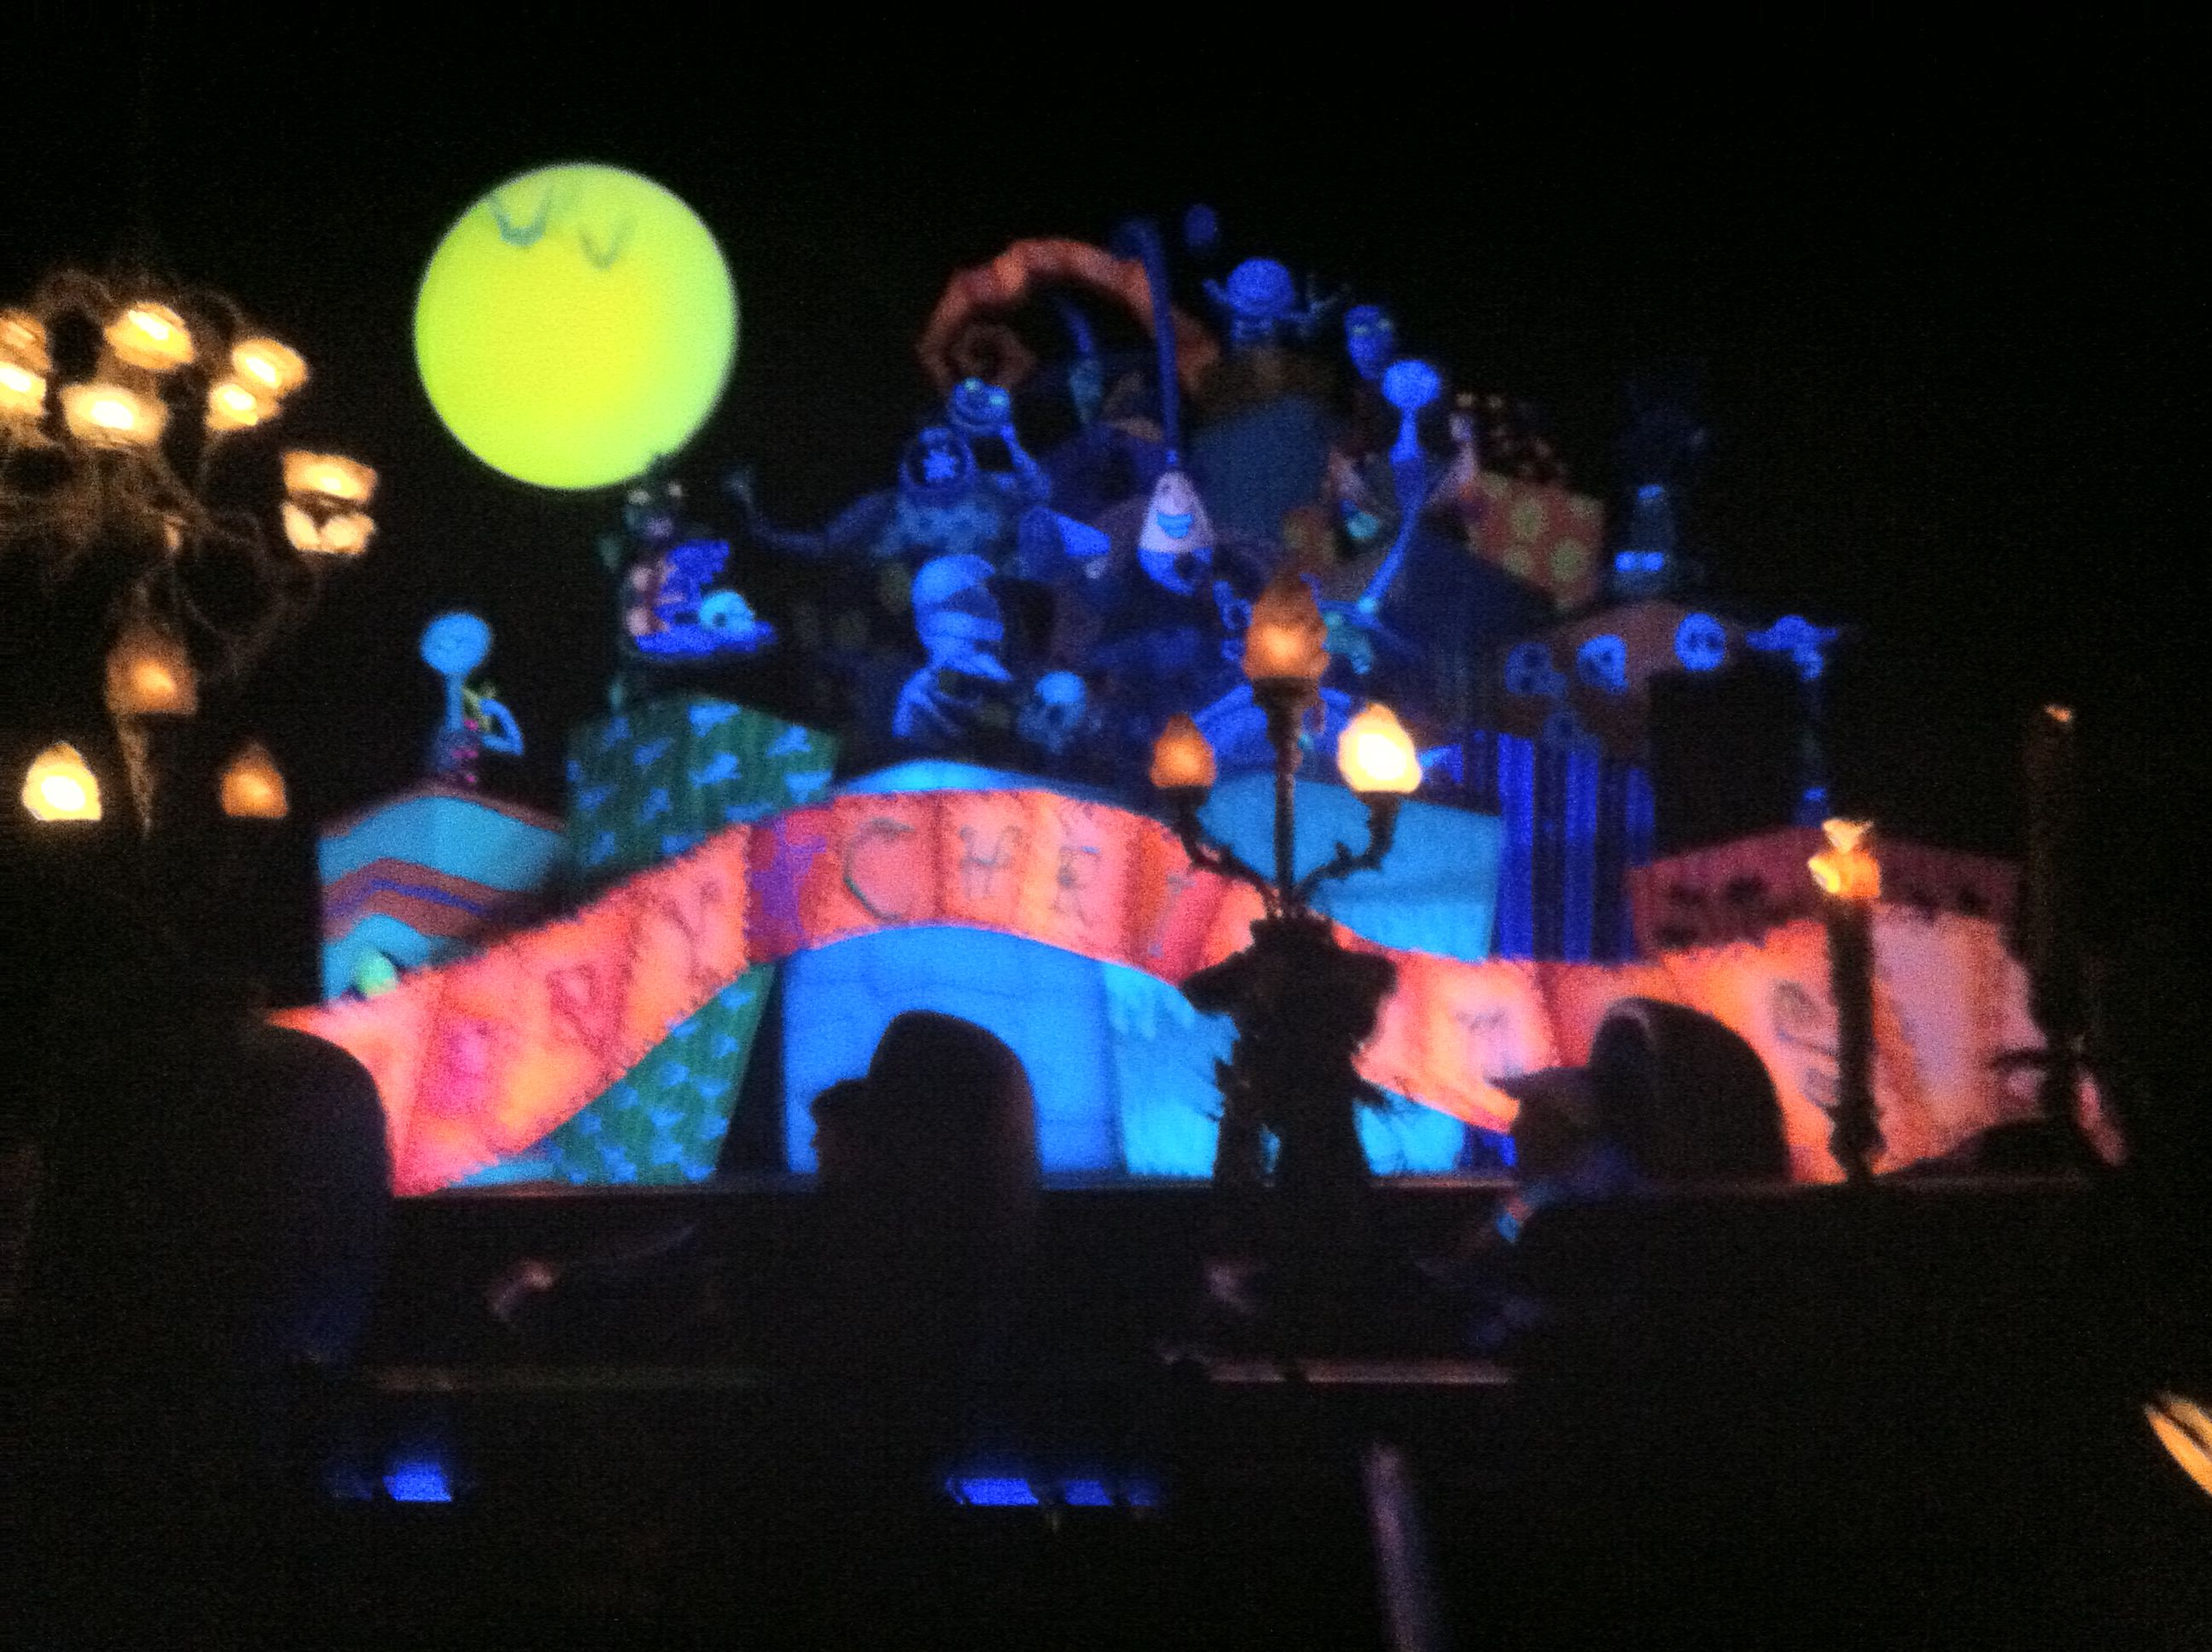 Nightmare Before Christmas in Disneyland